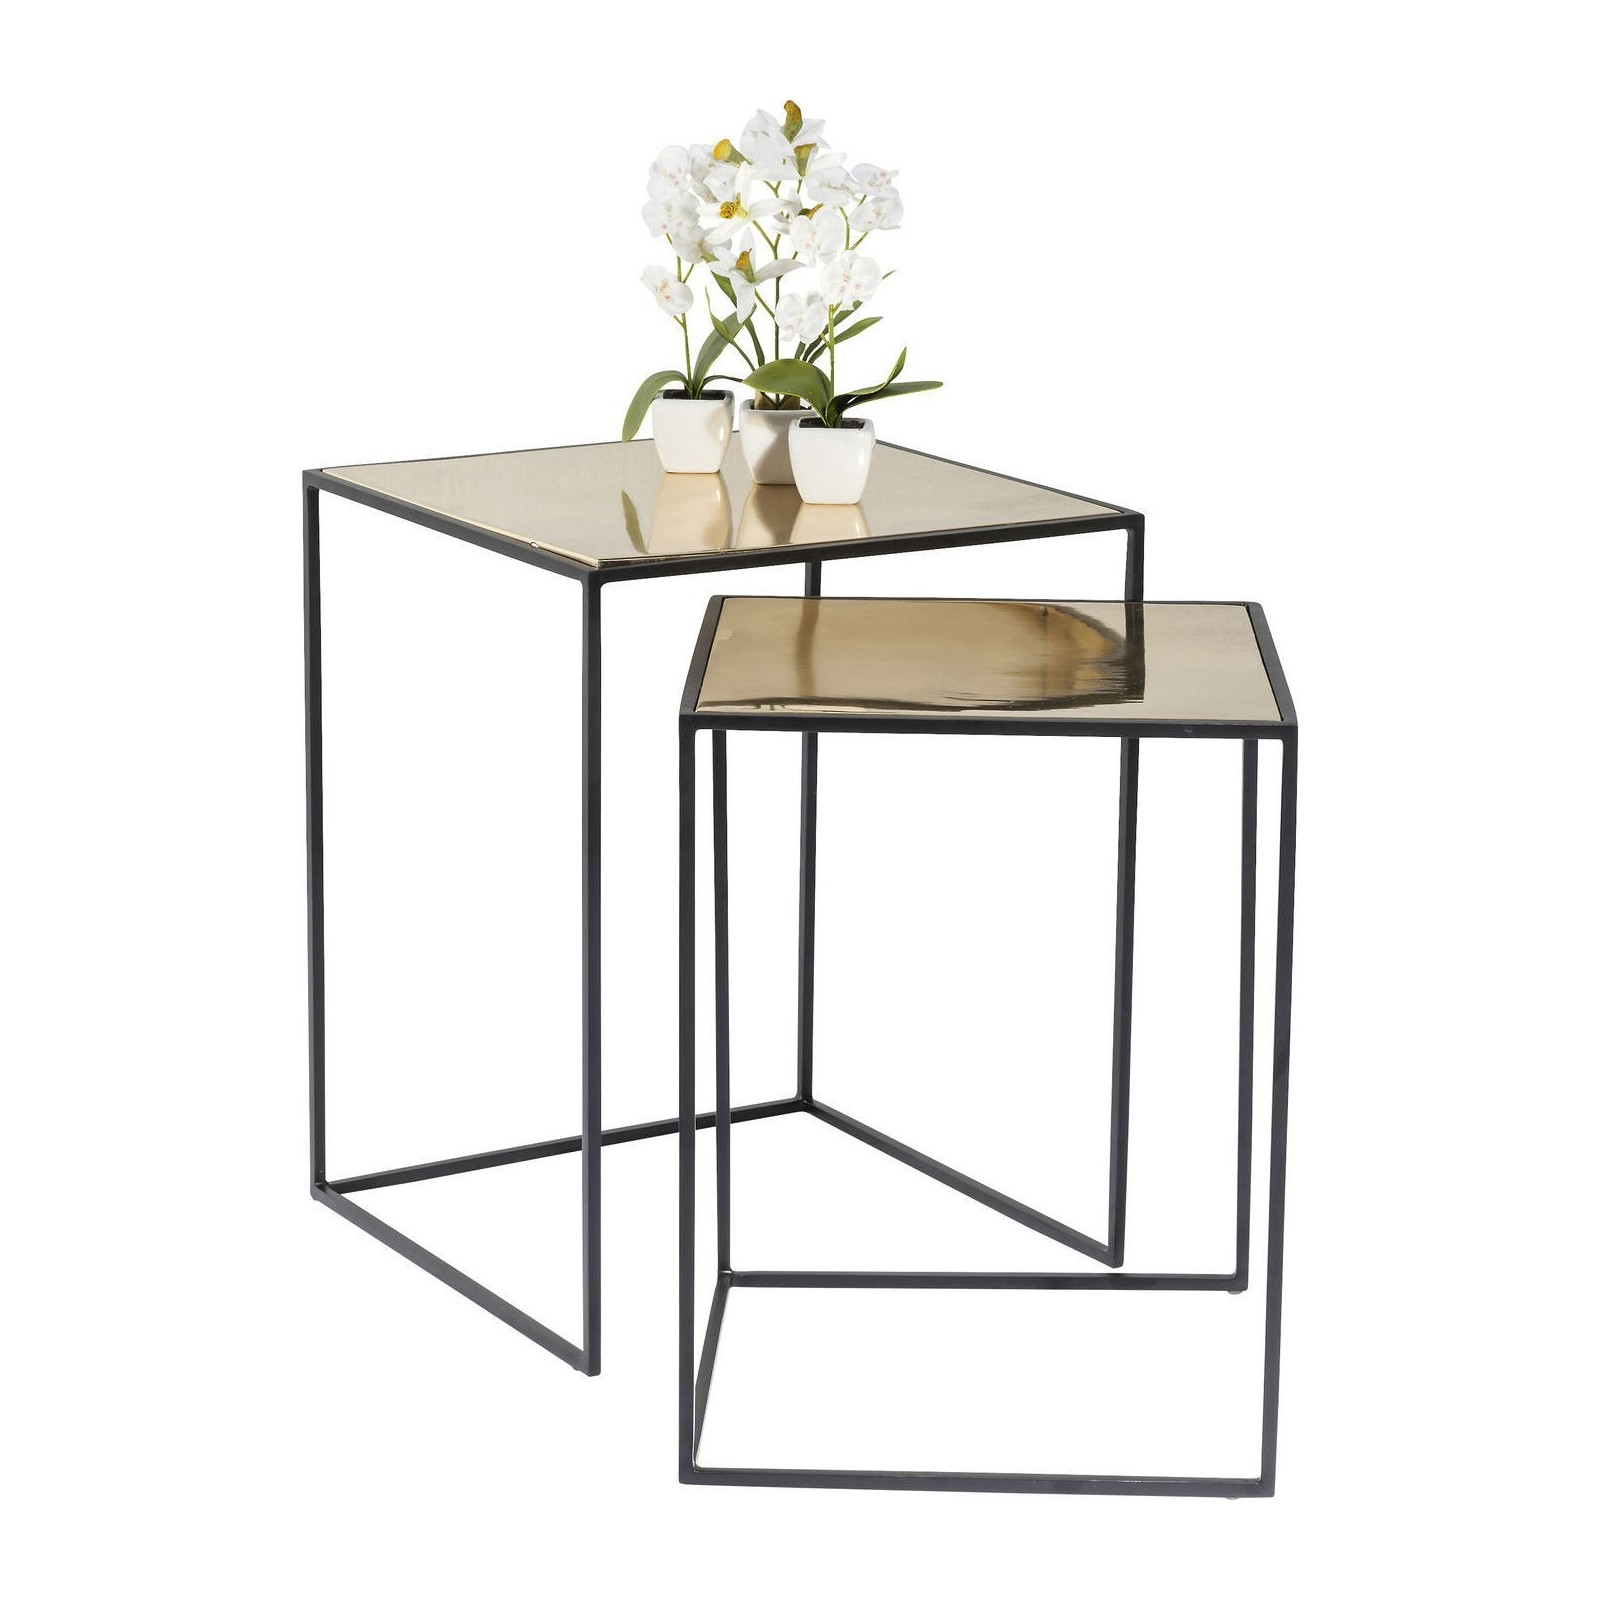 Tables d 39 appoint treasure gold set de 2 kare design - Tables d appoint design ...